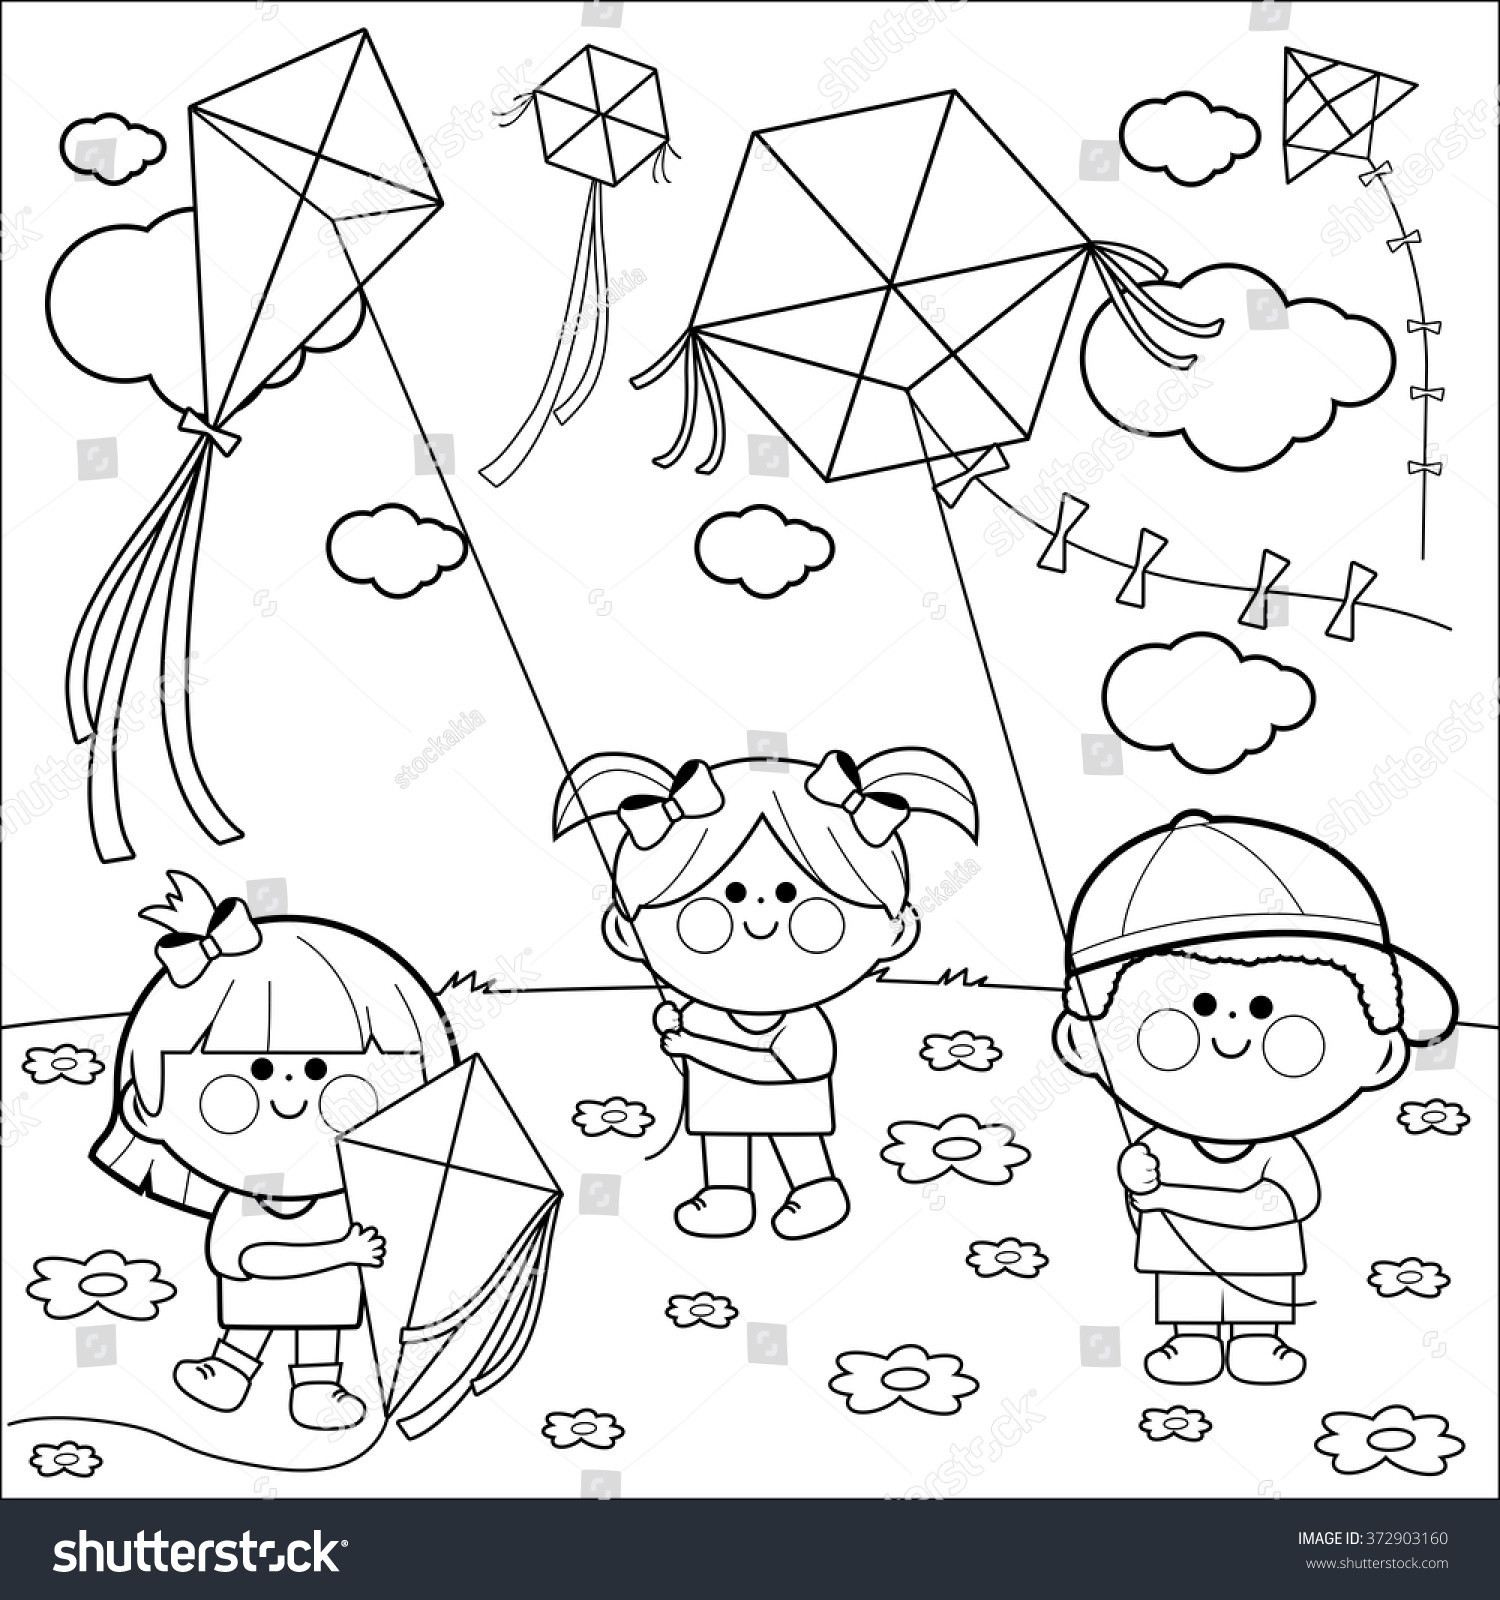 Vector Black White Illustration Children Playing Stock